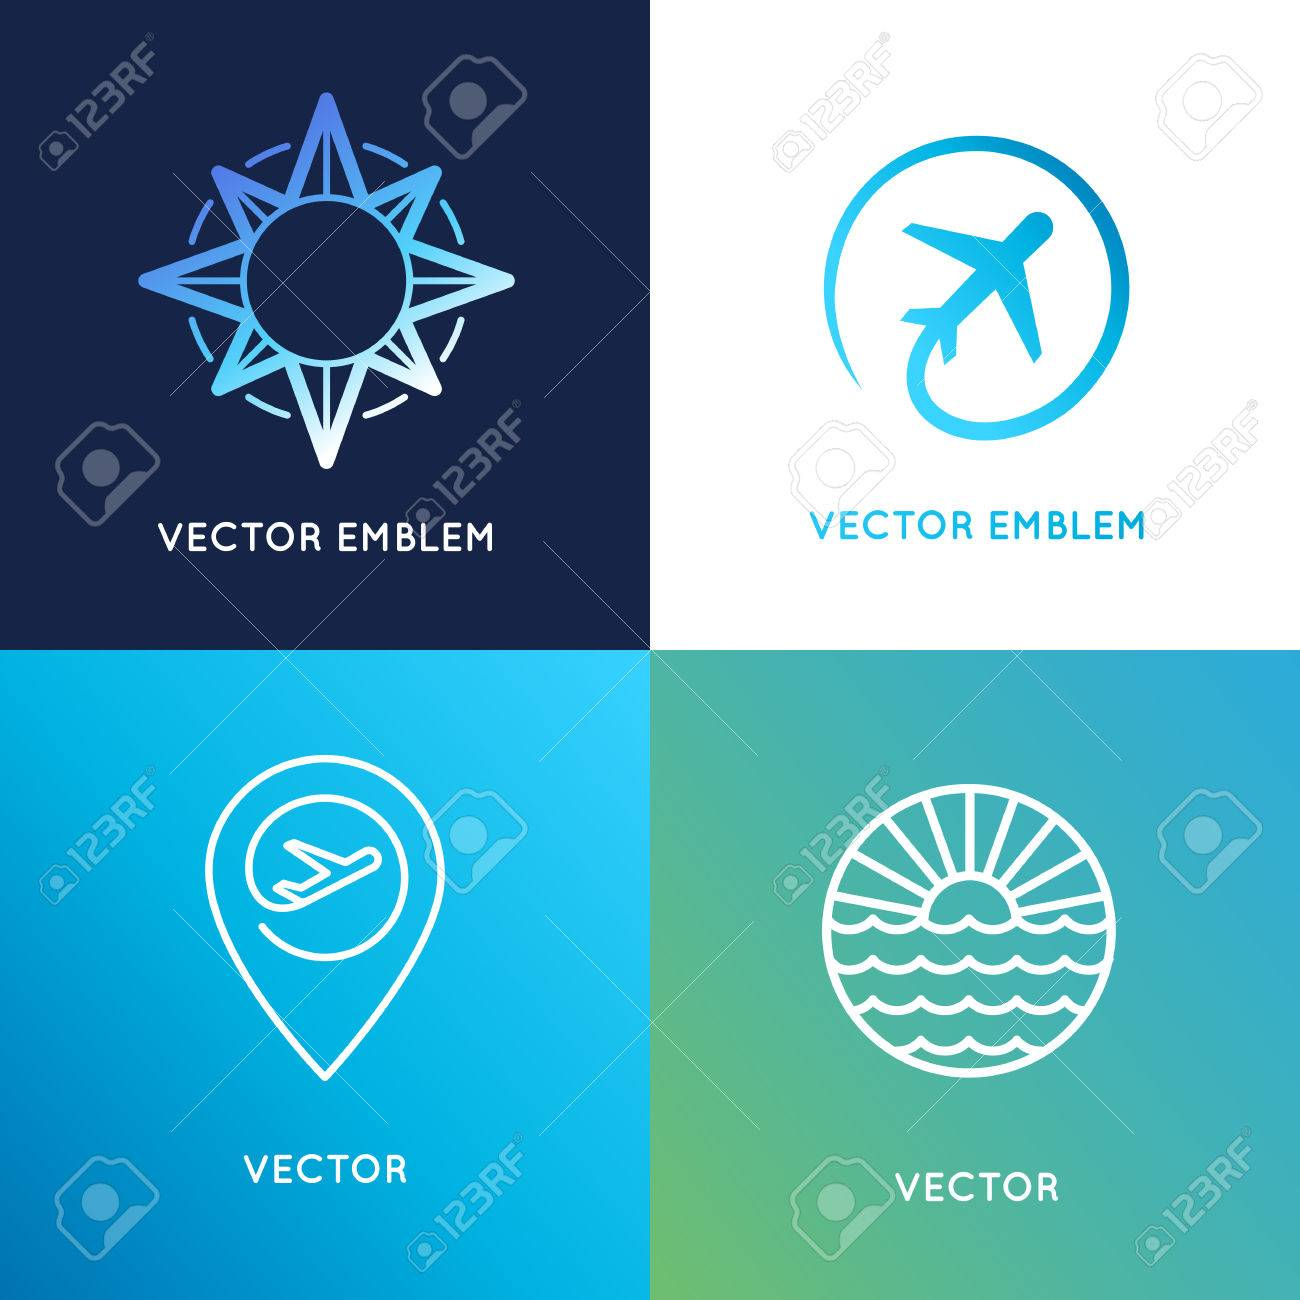 Vector Logo Design Templates In Trendy Linear Style With Icons